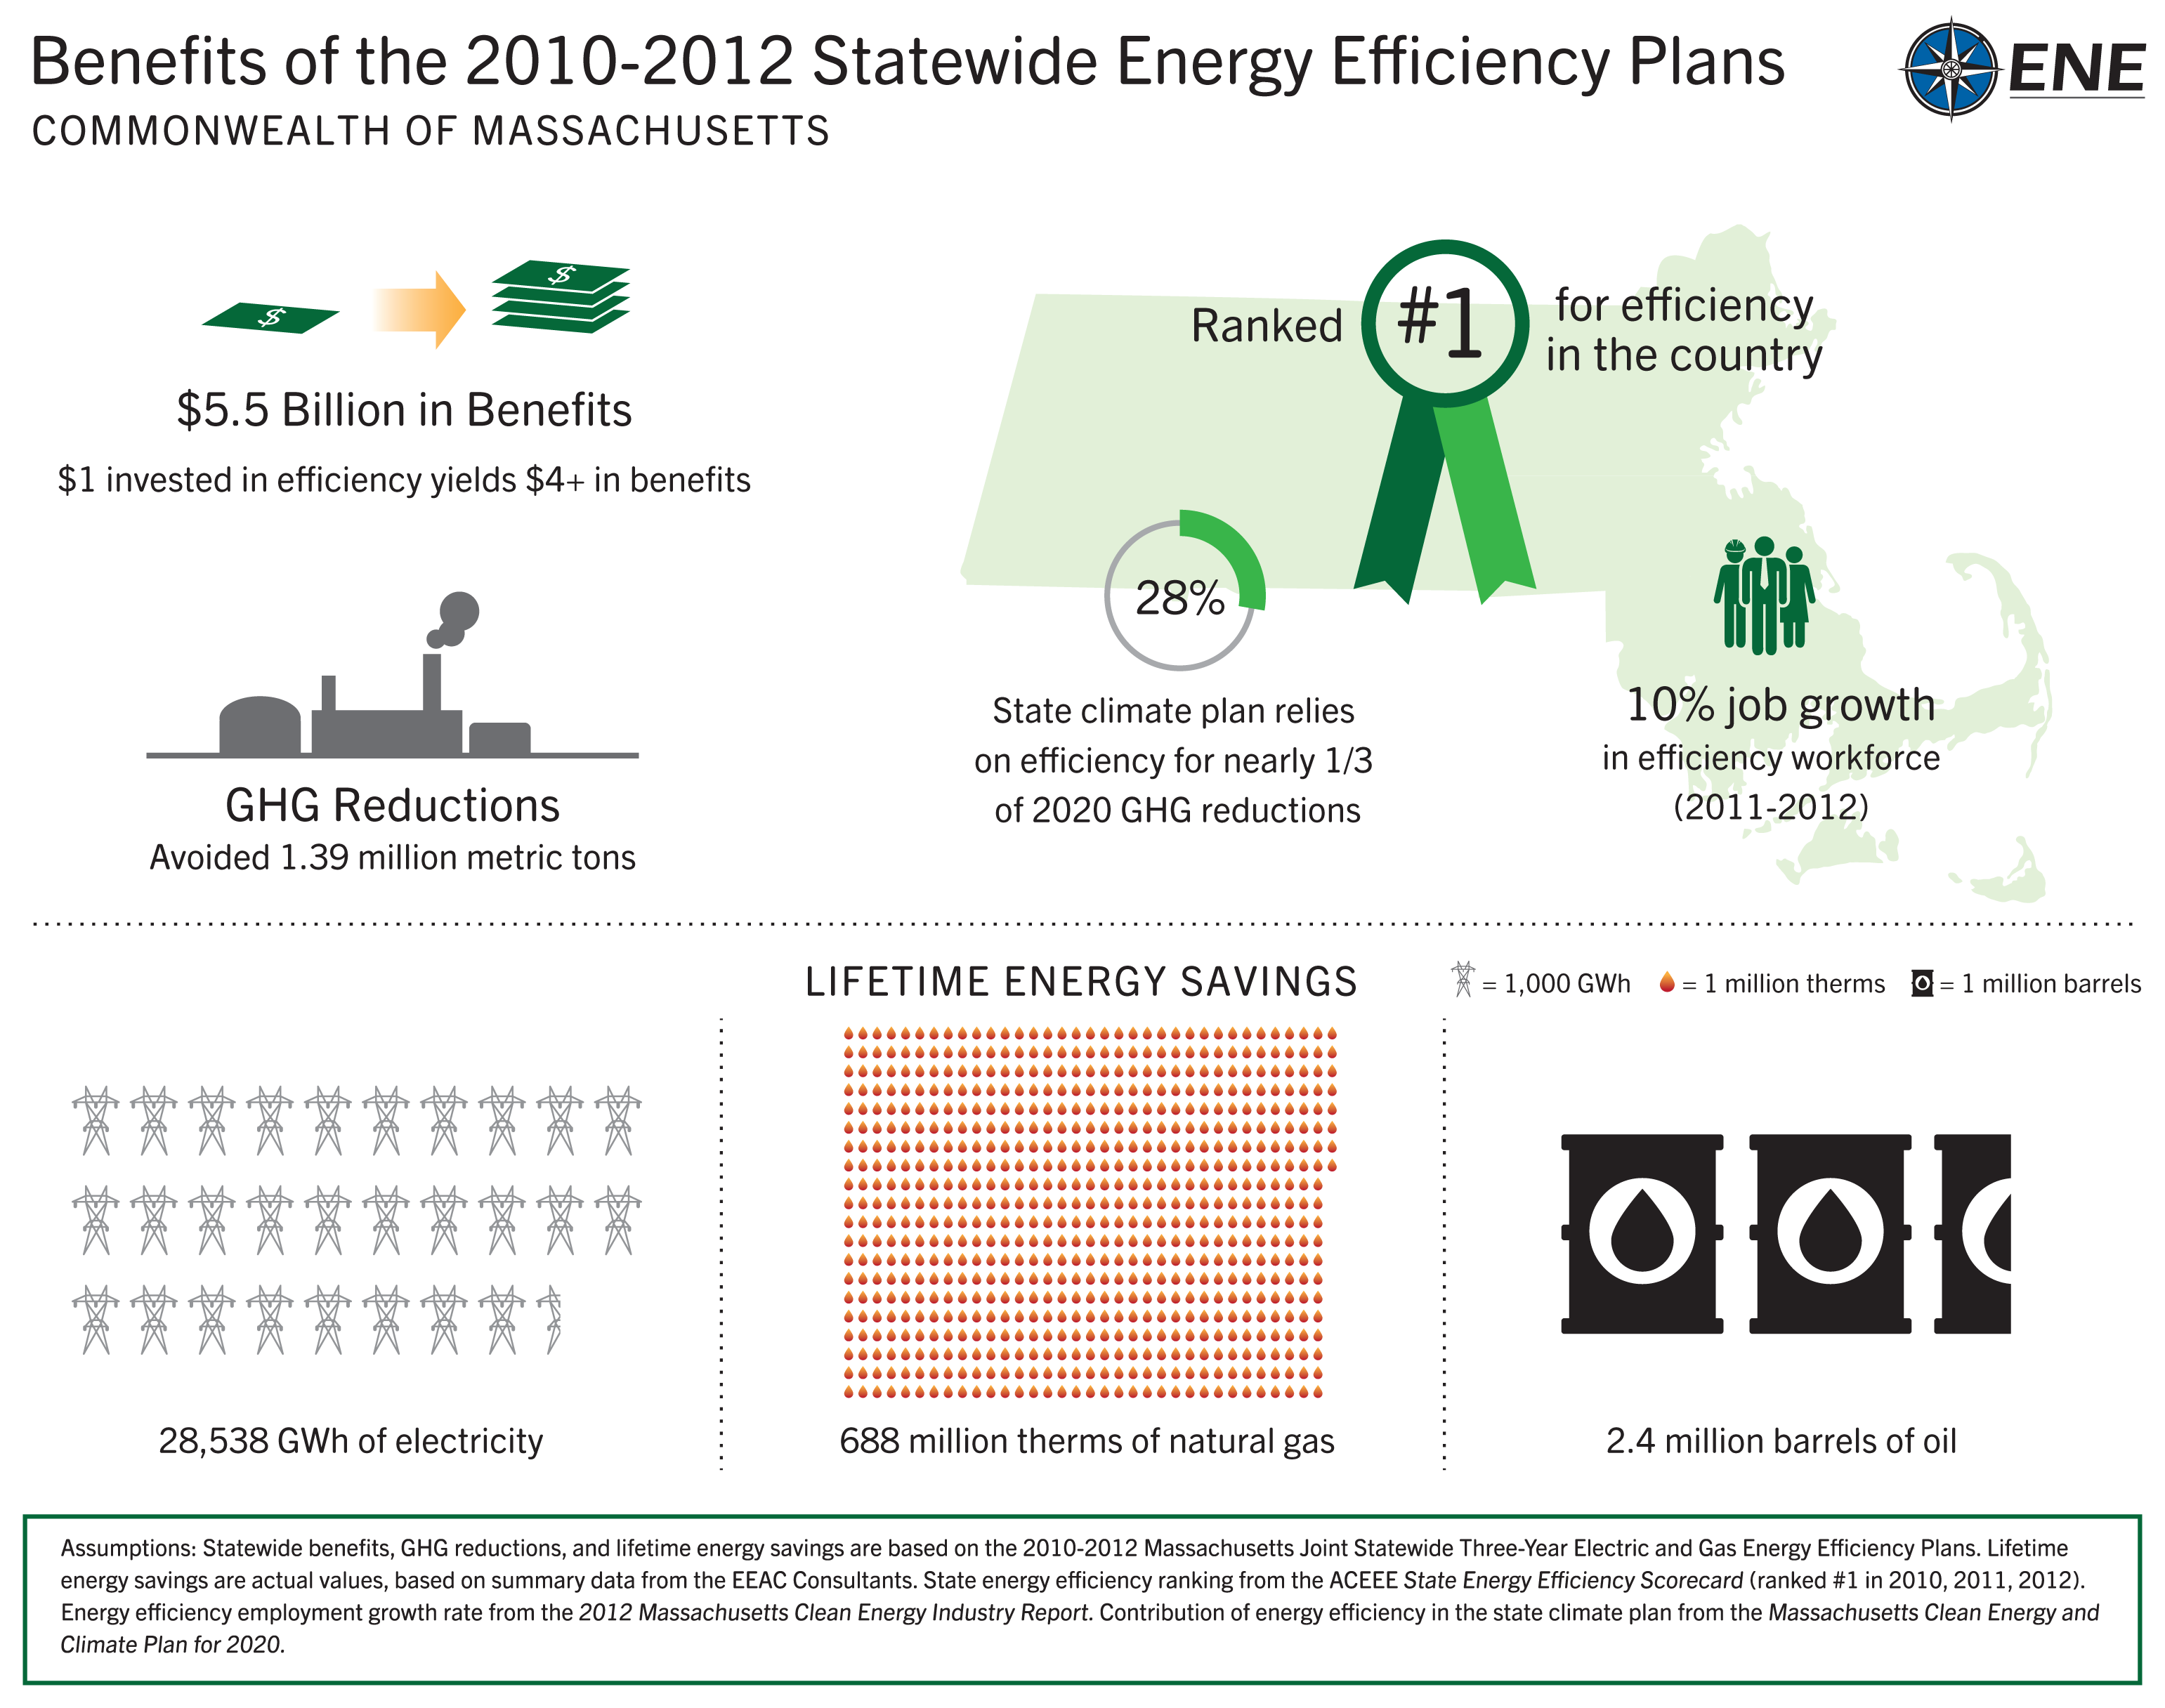 #1 state for energy efficiency